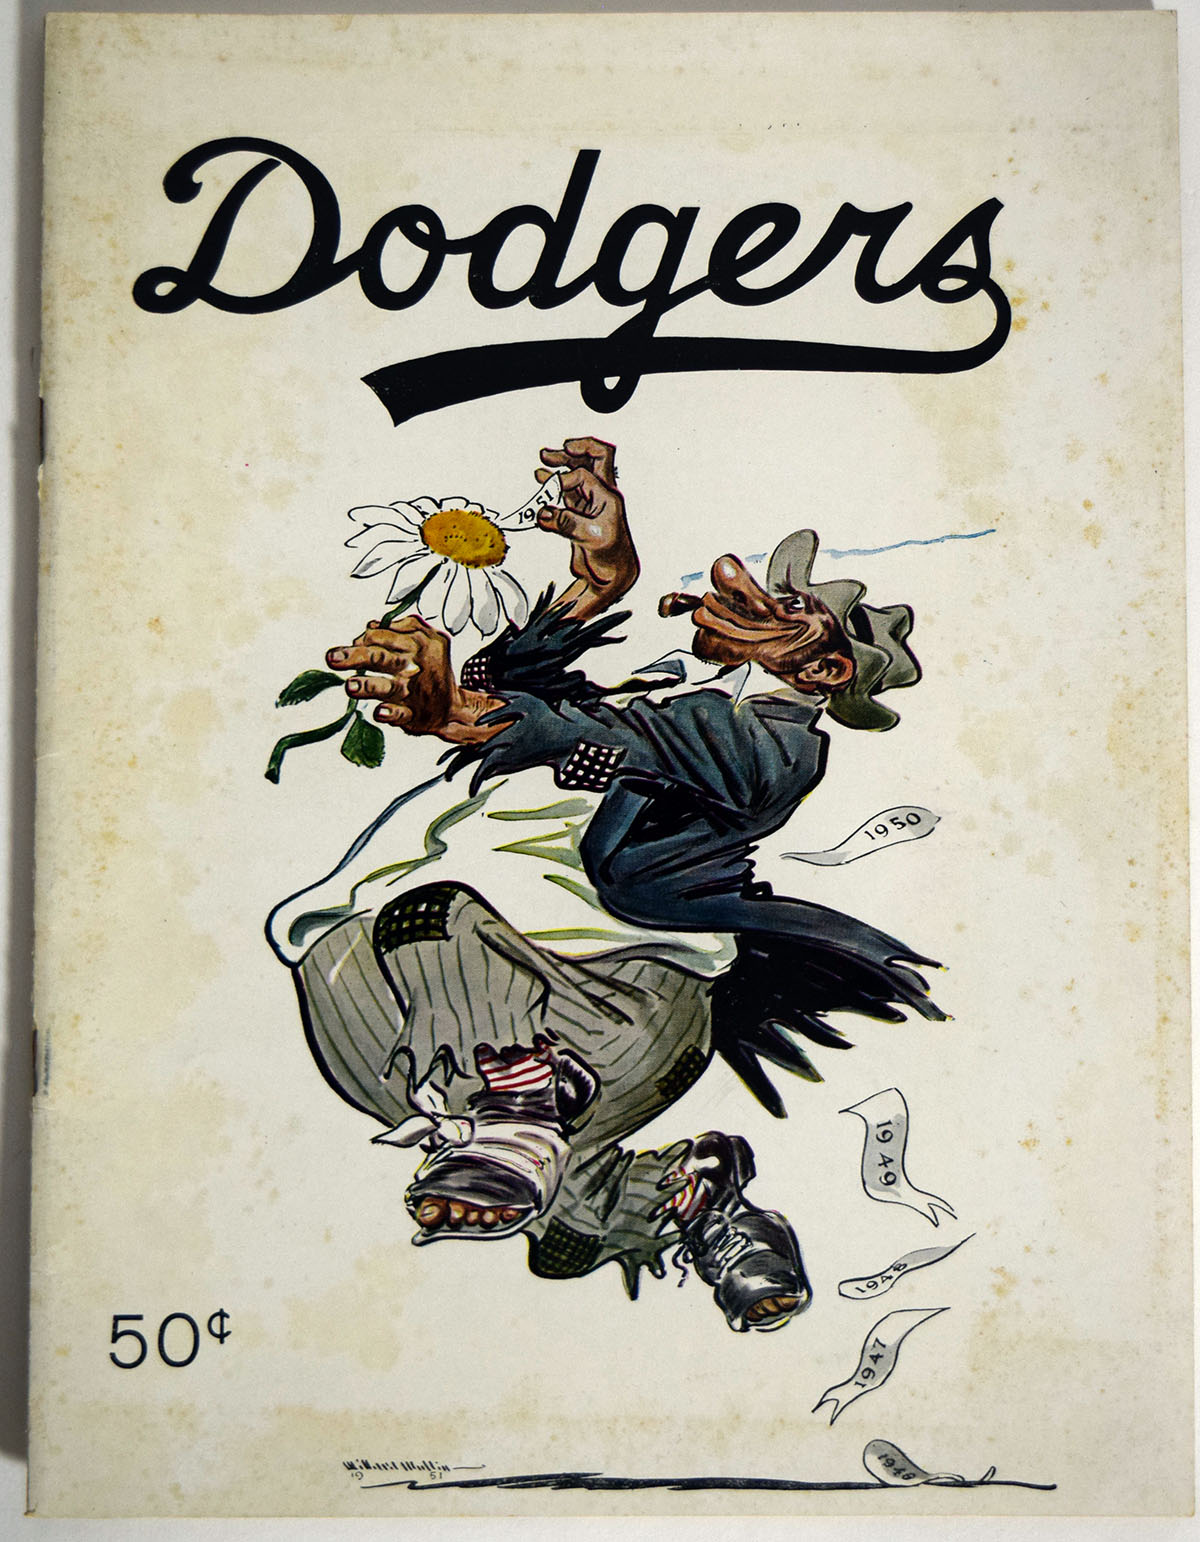 Lot #1404 1951 Yearbook  Brooklyn Dodgers Cond: Ex-Mt